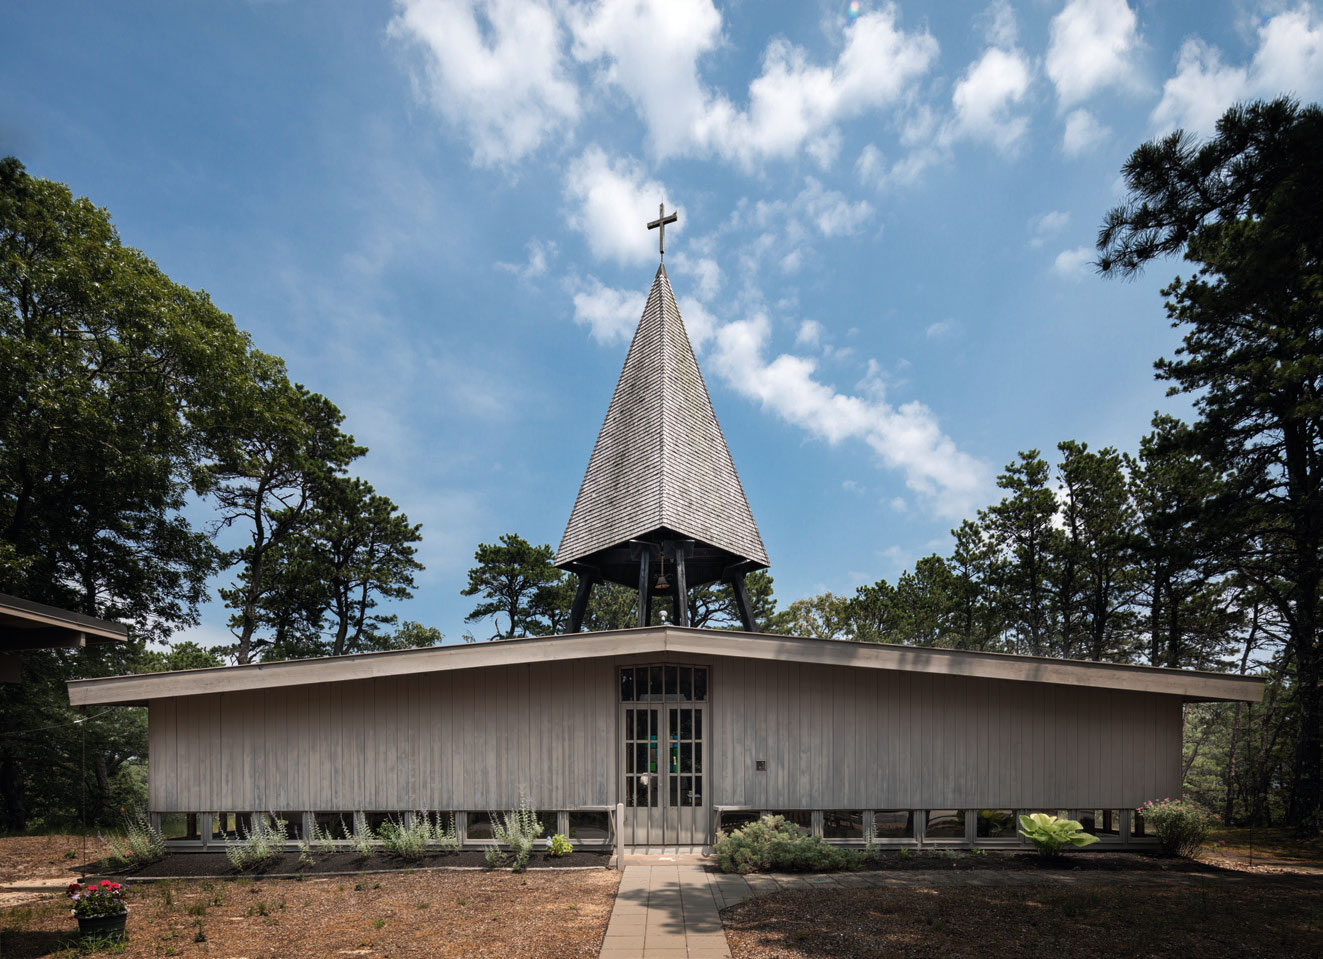 The Chapel of St. James the Fisherman in Wellfleet, Massachusetts, by Olav Hammarstrom. As featured in Mid-Century Modern Architecture Travel Guide: East Coast USA. All photographs by Darren Bradley